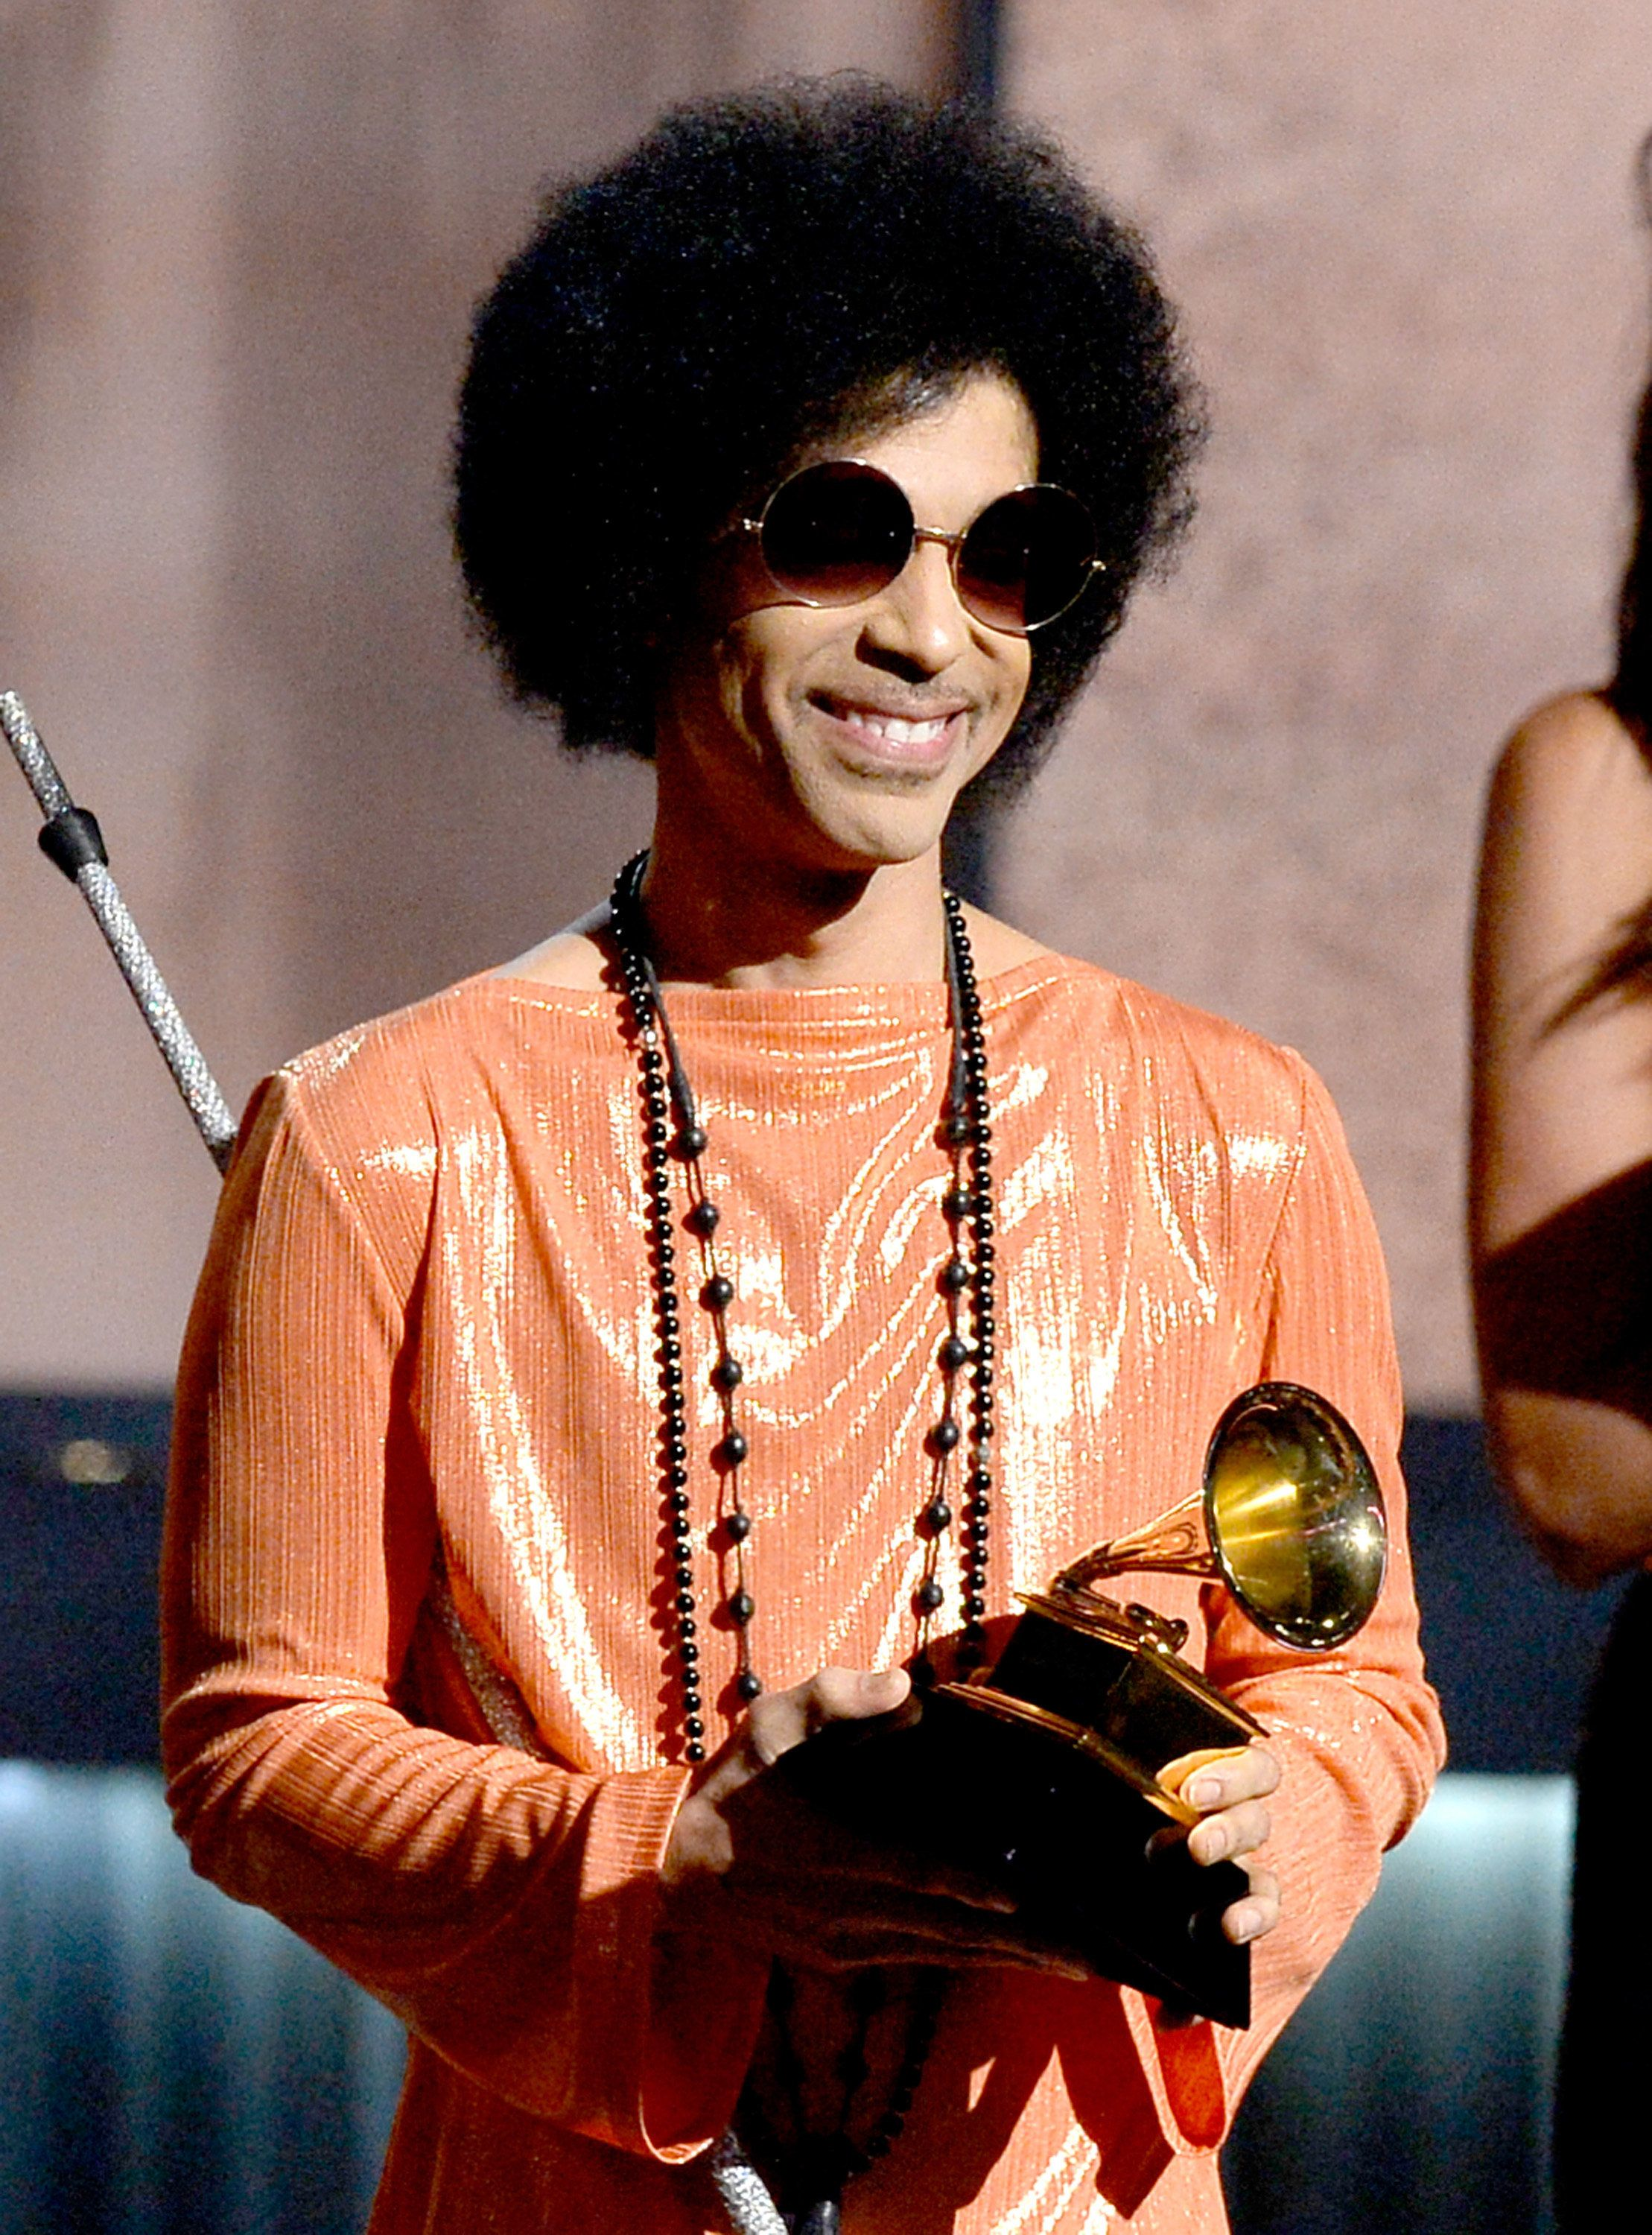 LOS ANGELES, CA - FEBRUARY 08:  Musician Prince speaks onstage during The 57th Annual GRAMMY Awards at the at the STAPLES Center on February 8, 2015 in Los Angeles, California.  (Photo by Kevork Djansezian/Getty Images)